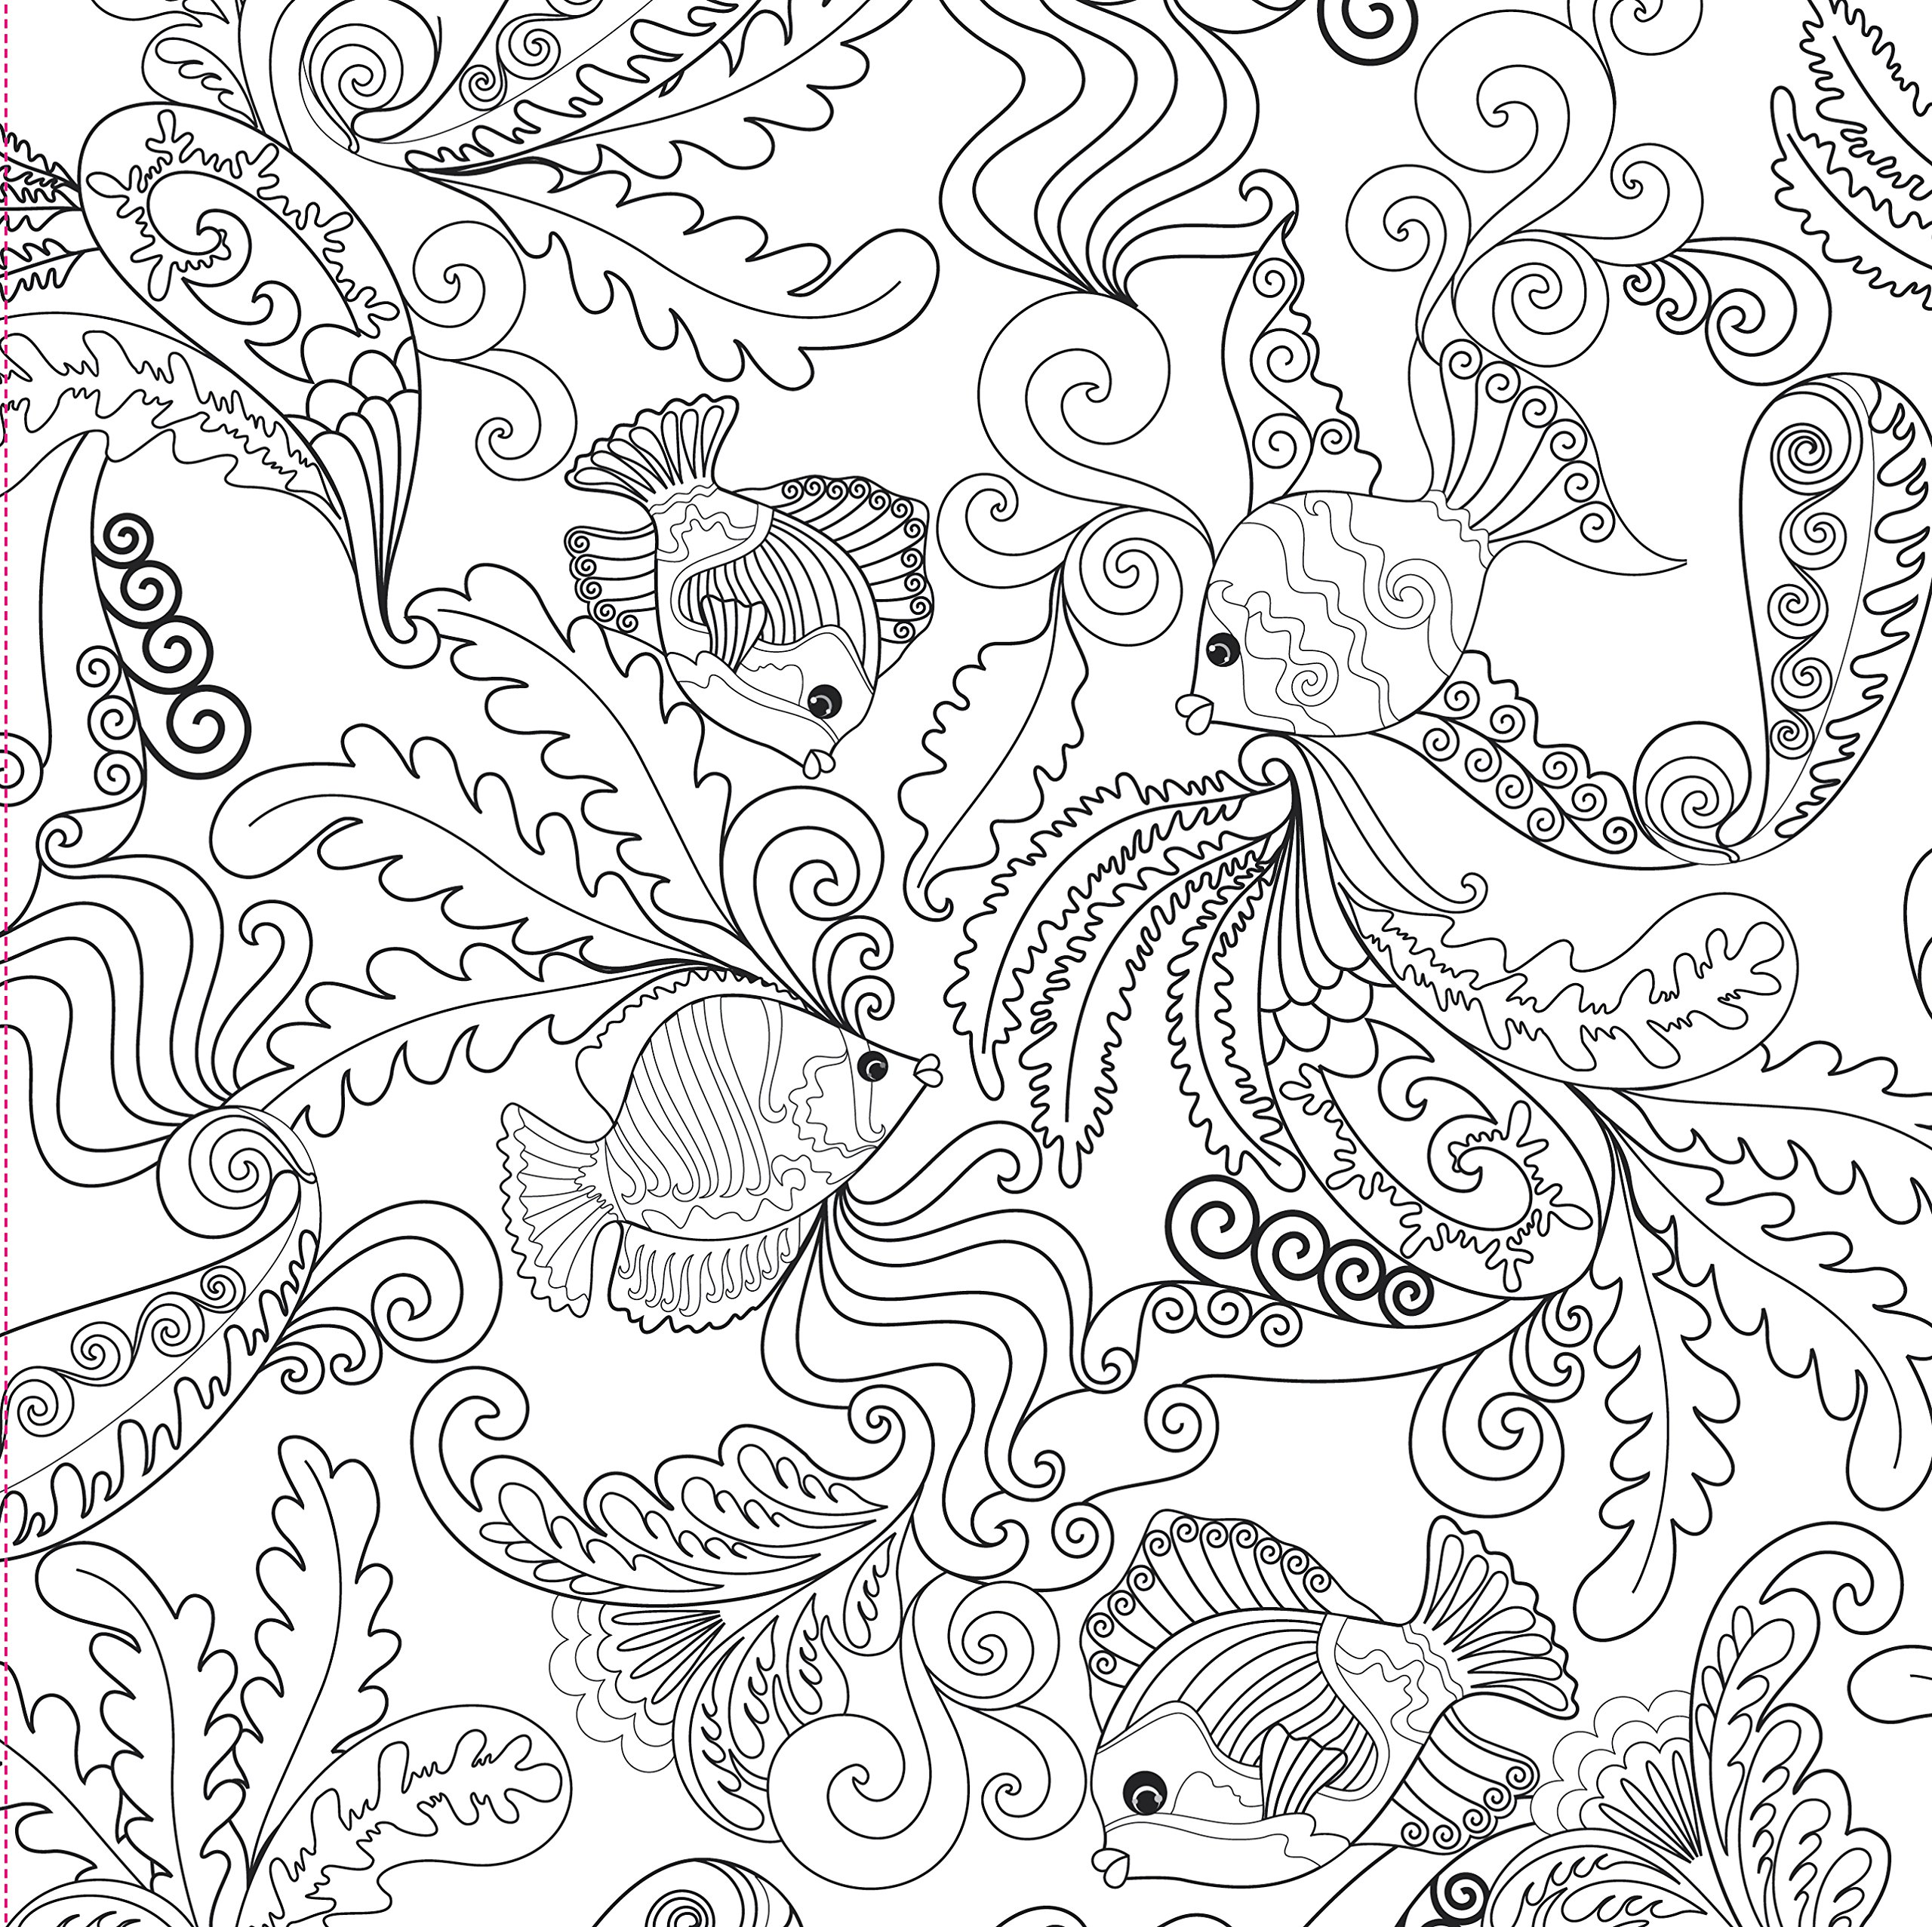 - Ocean Designs Artist's Coloring Book - A2Z Science & Learning Store